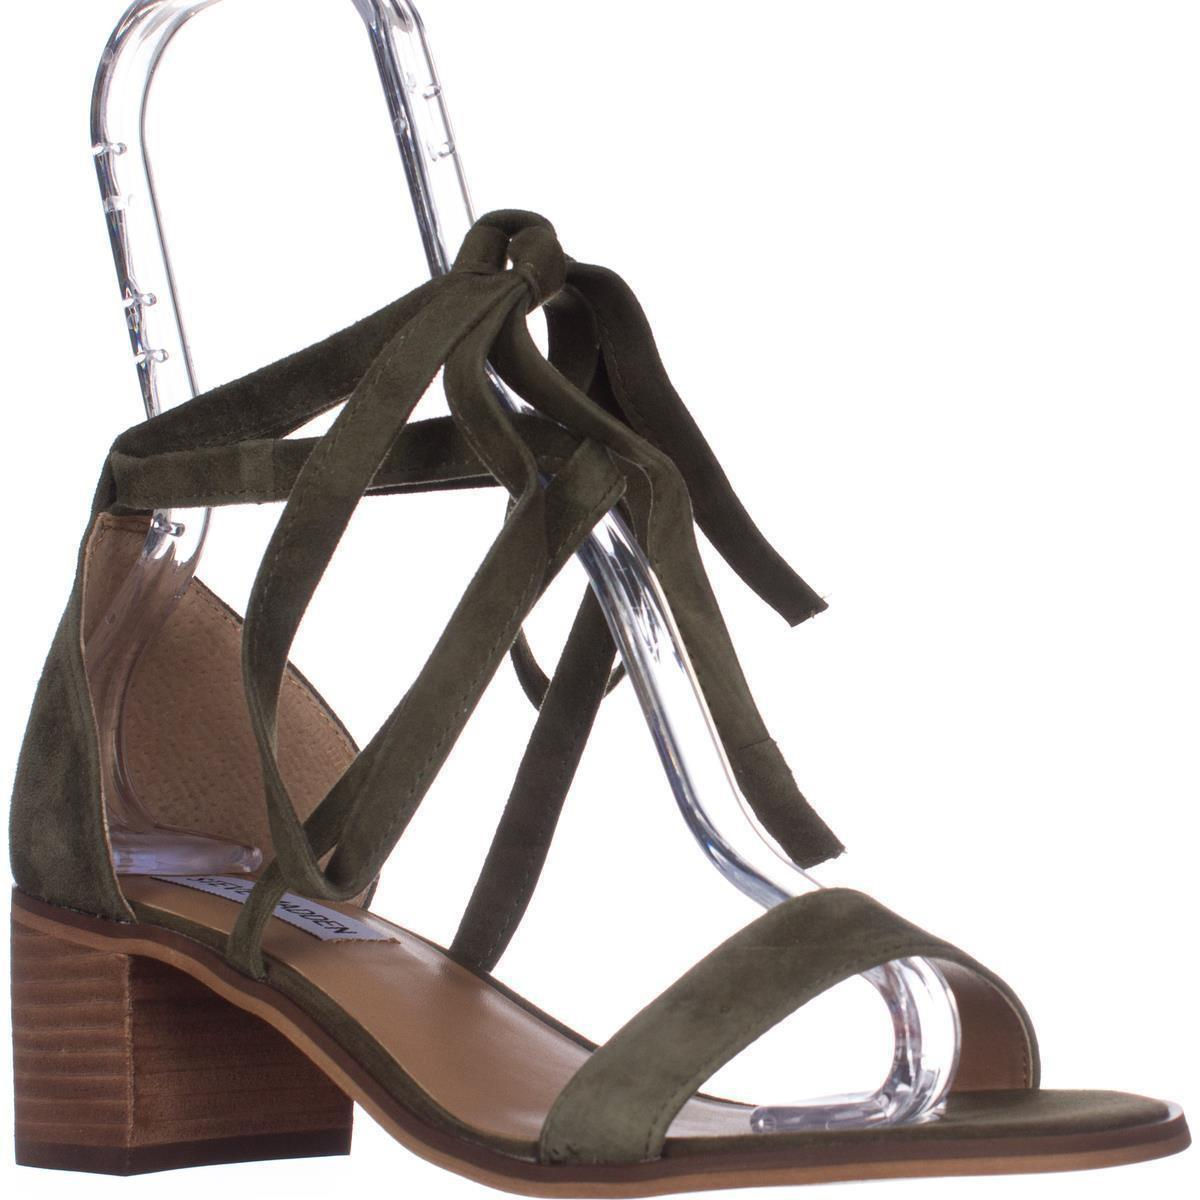 a4c42c6e993 Steve Madden Rizzaa Lace Up Ankle Strap Sandals in Green - Lyst